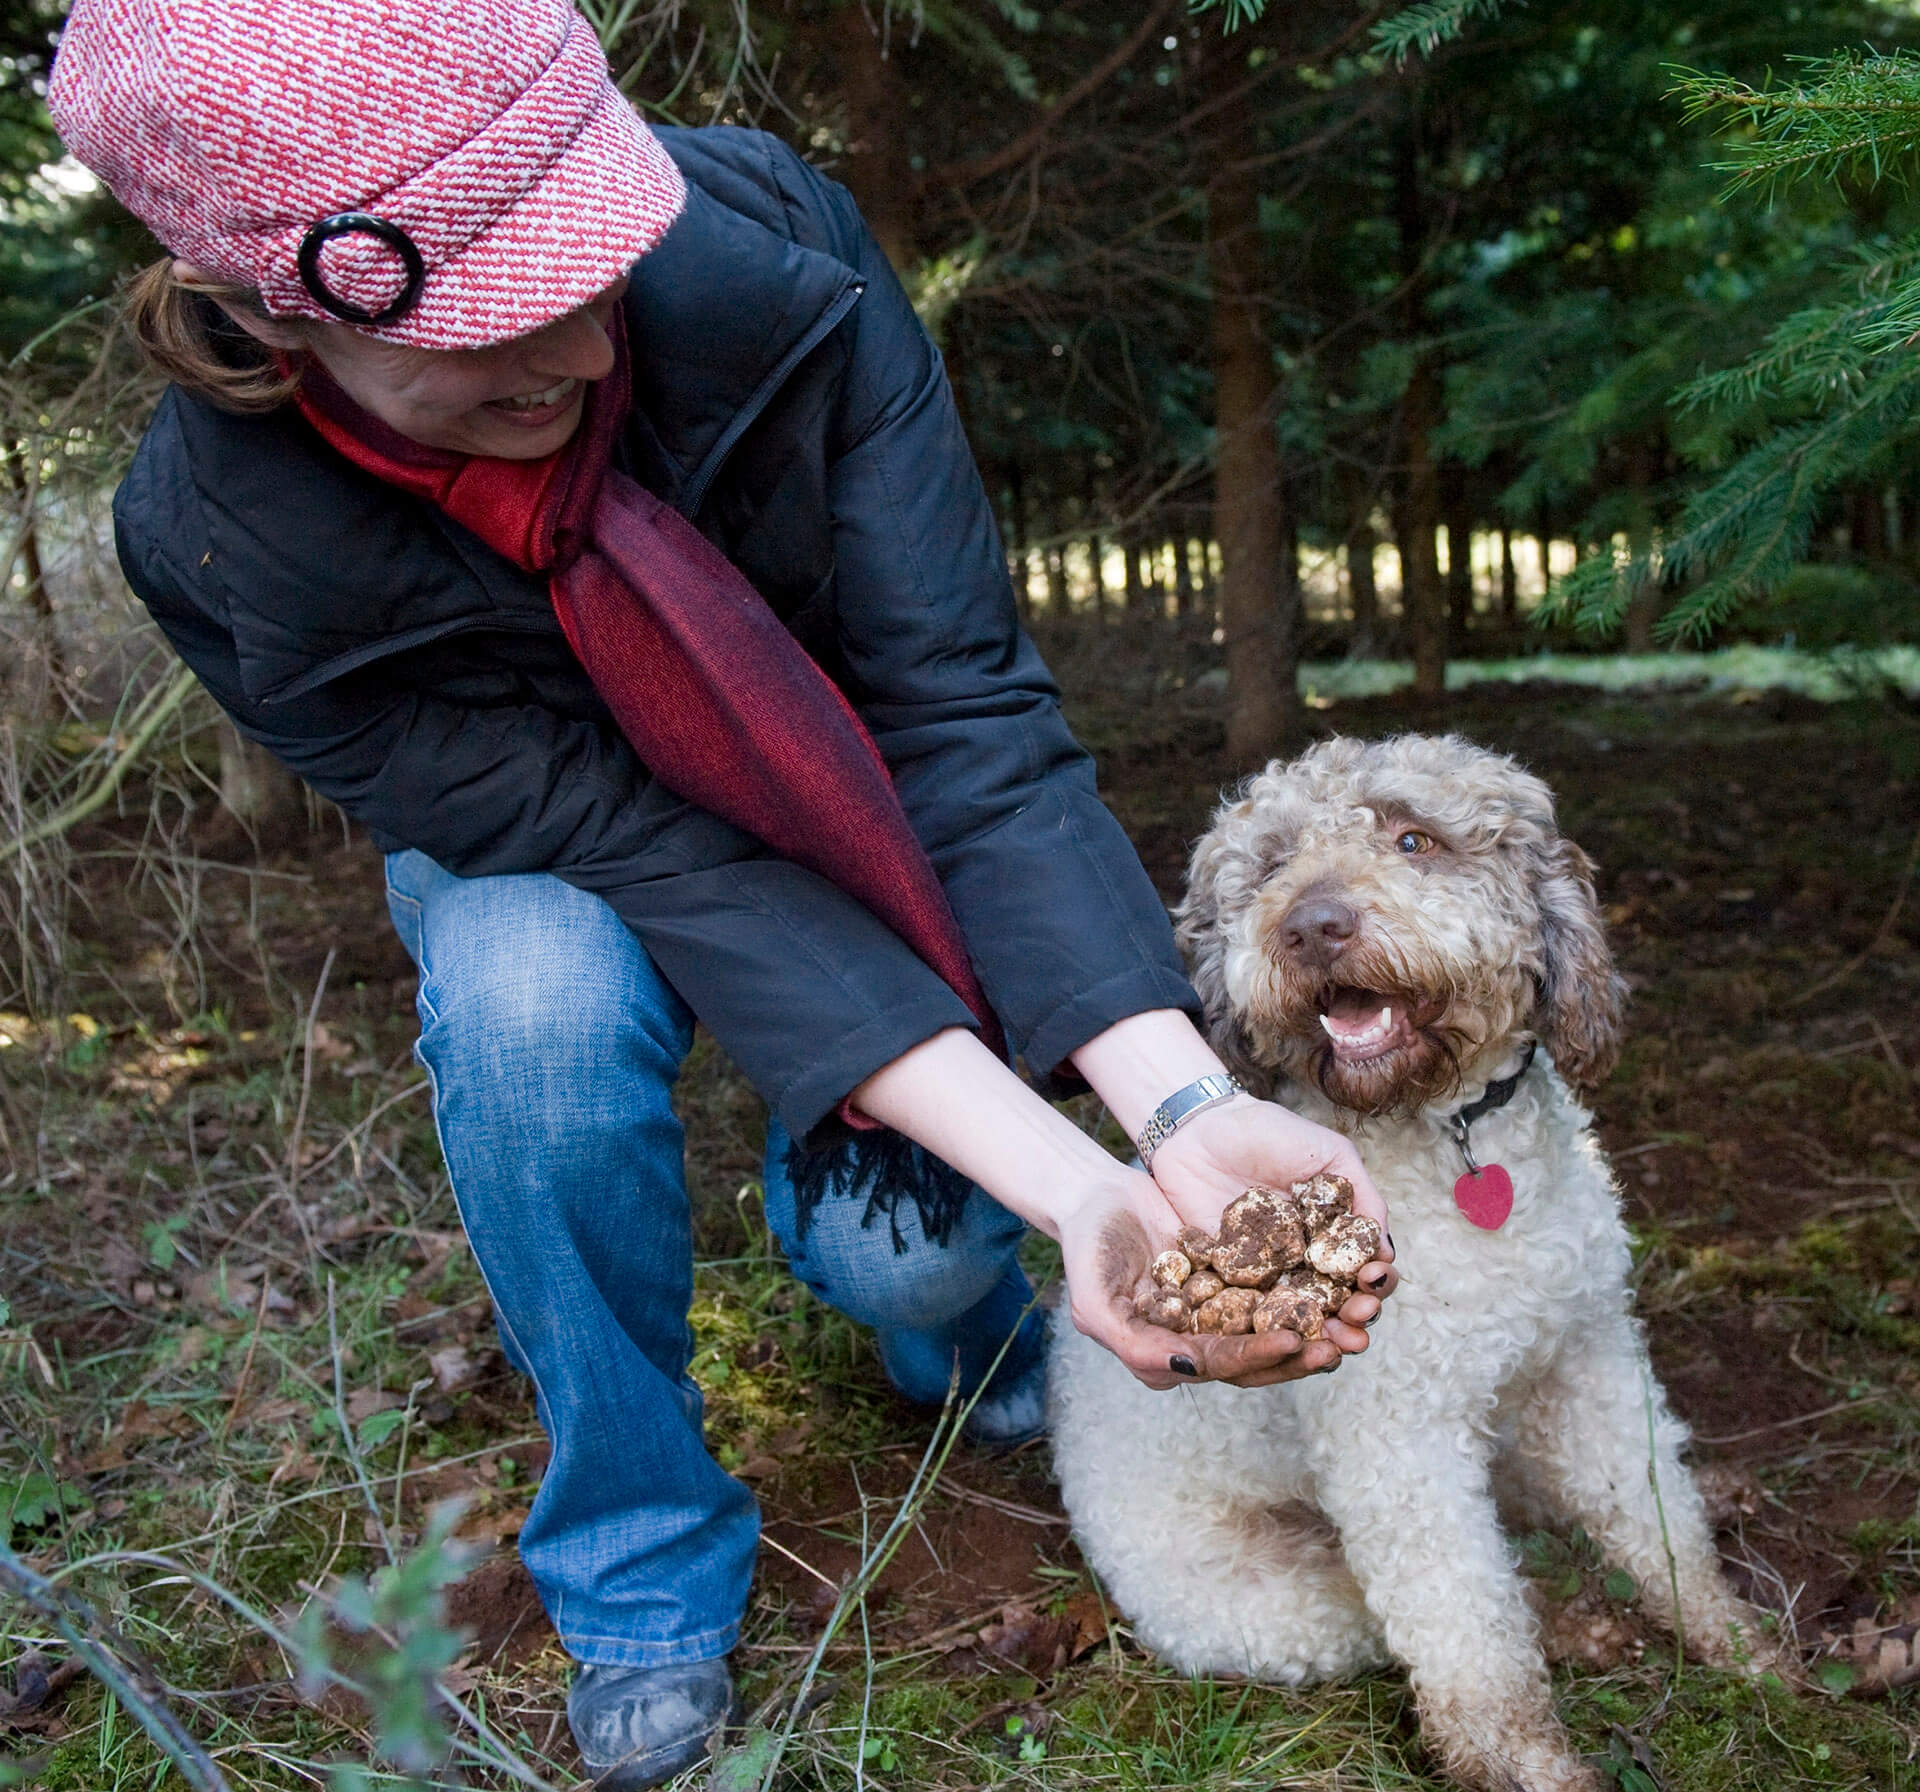 Dog who has found Oregon truffles.